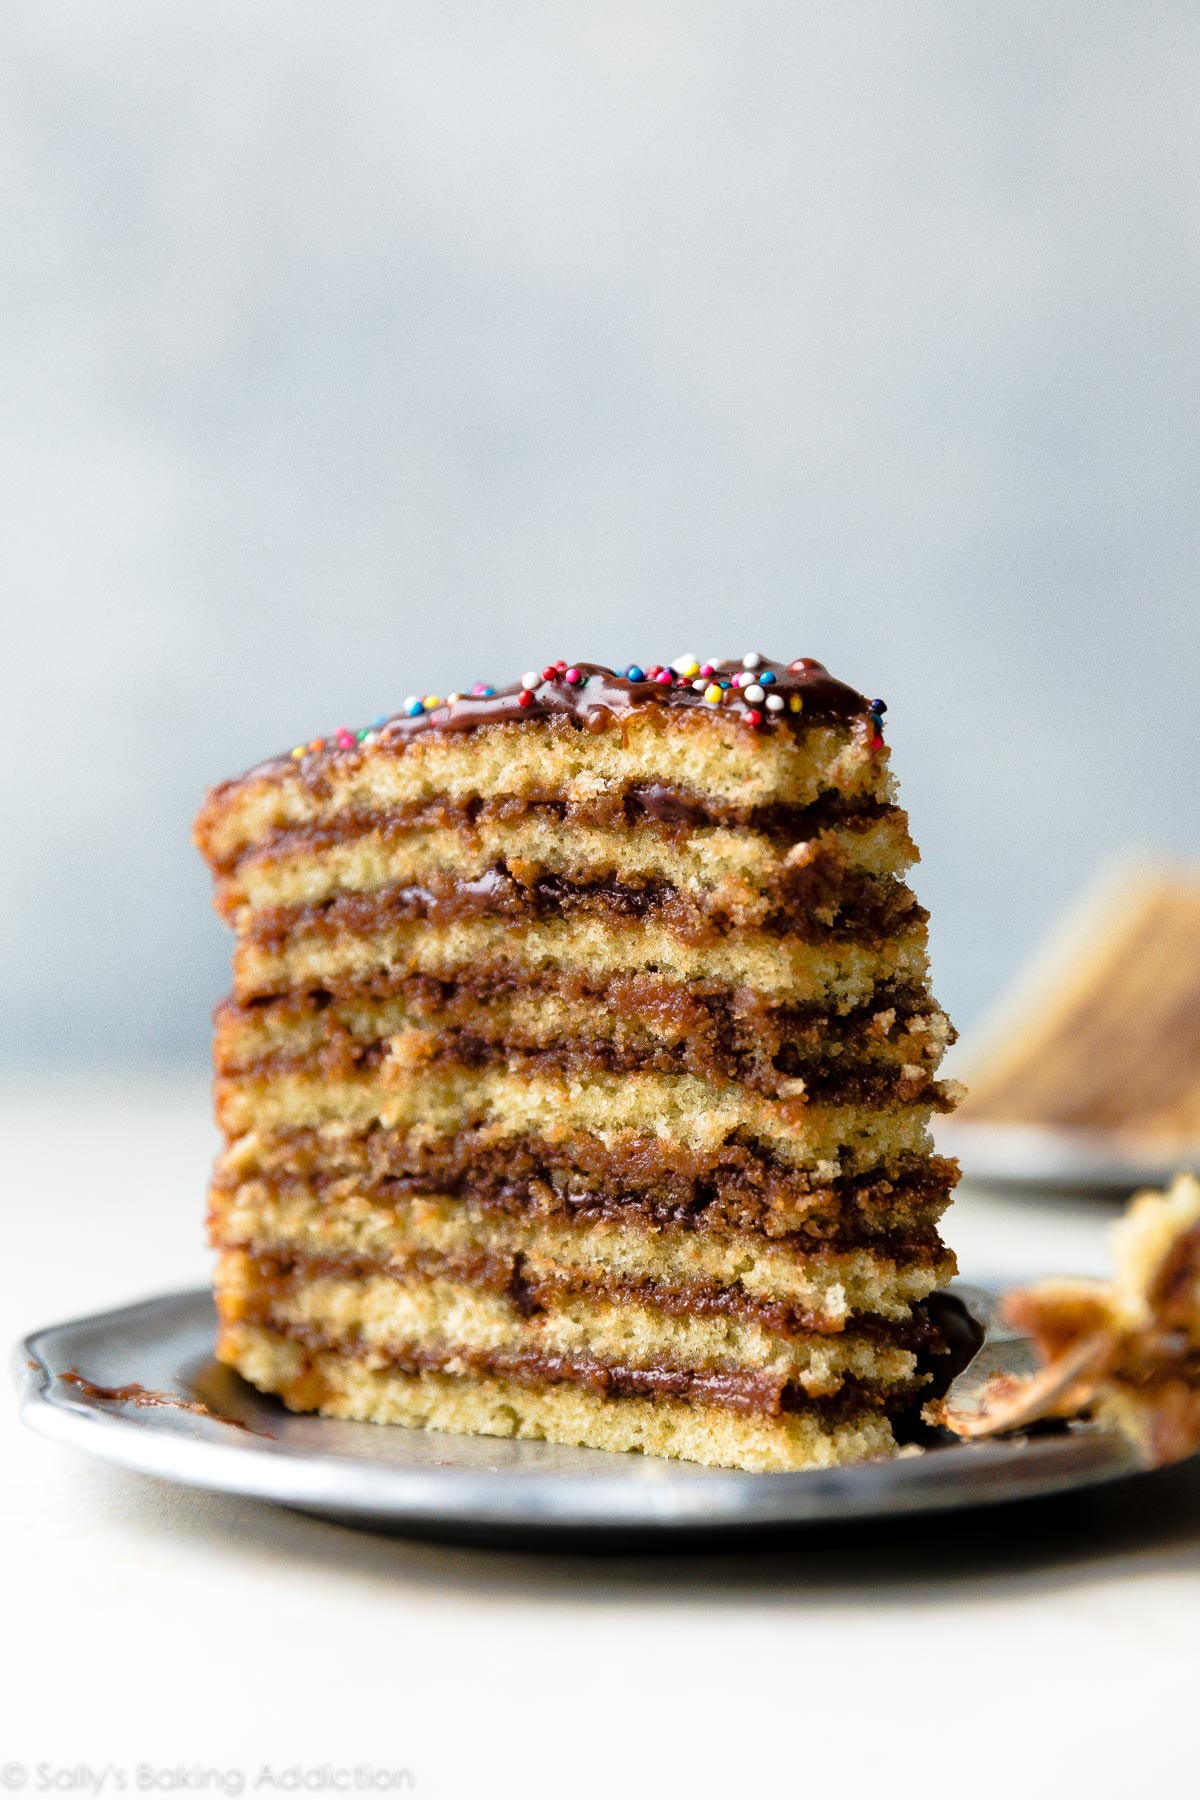 Super moist Smith Island Cake with 9 delicious yellow cake layers and chocolate fudge icing that seeps down into every layer. Surprisingly simple, especially if you have 3 cake pans! Recipe on sallysbakingaddiction.com